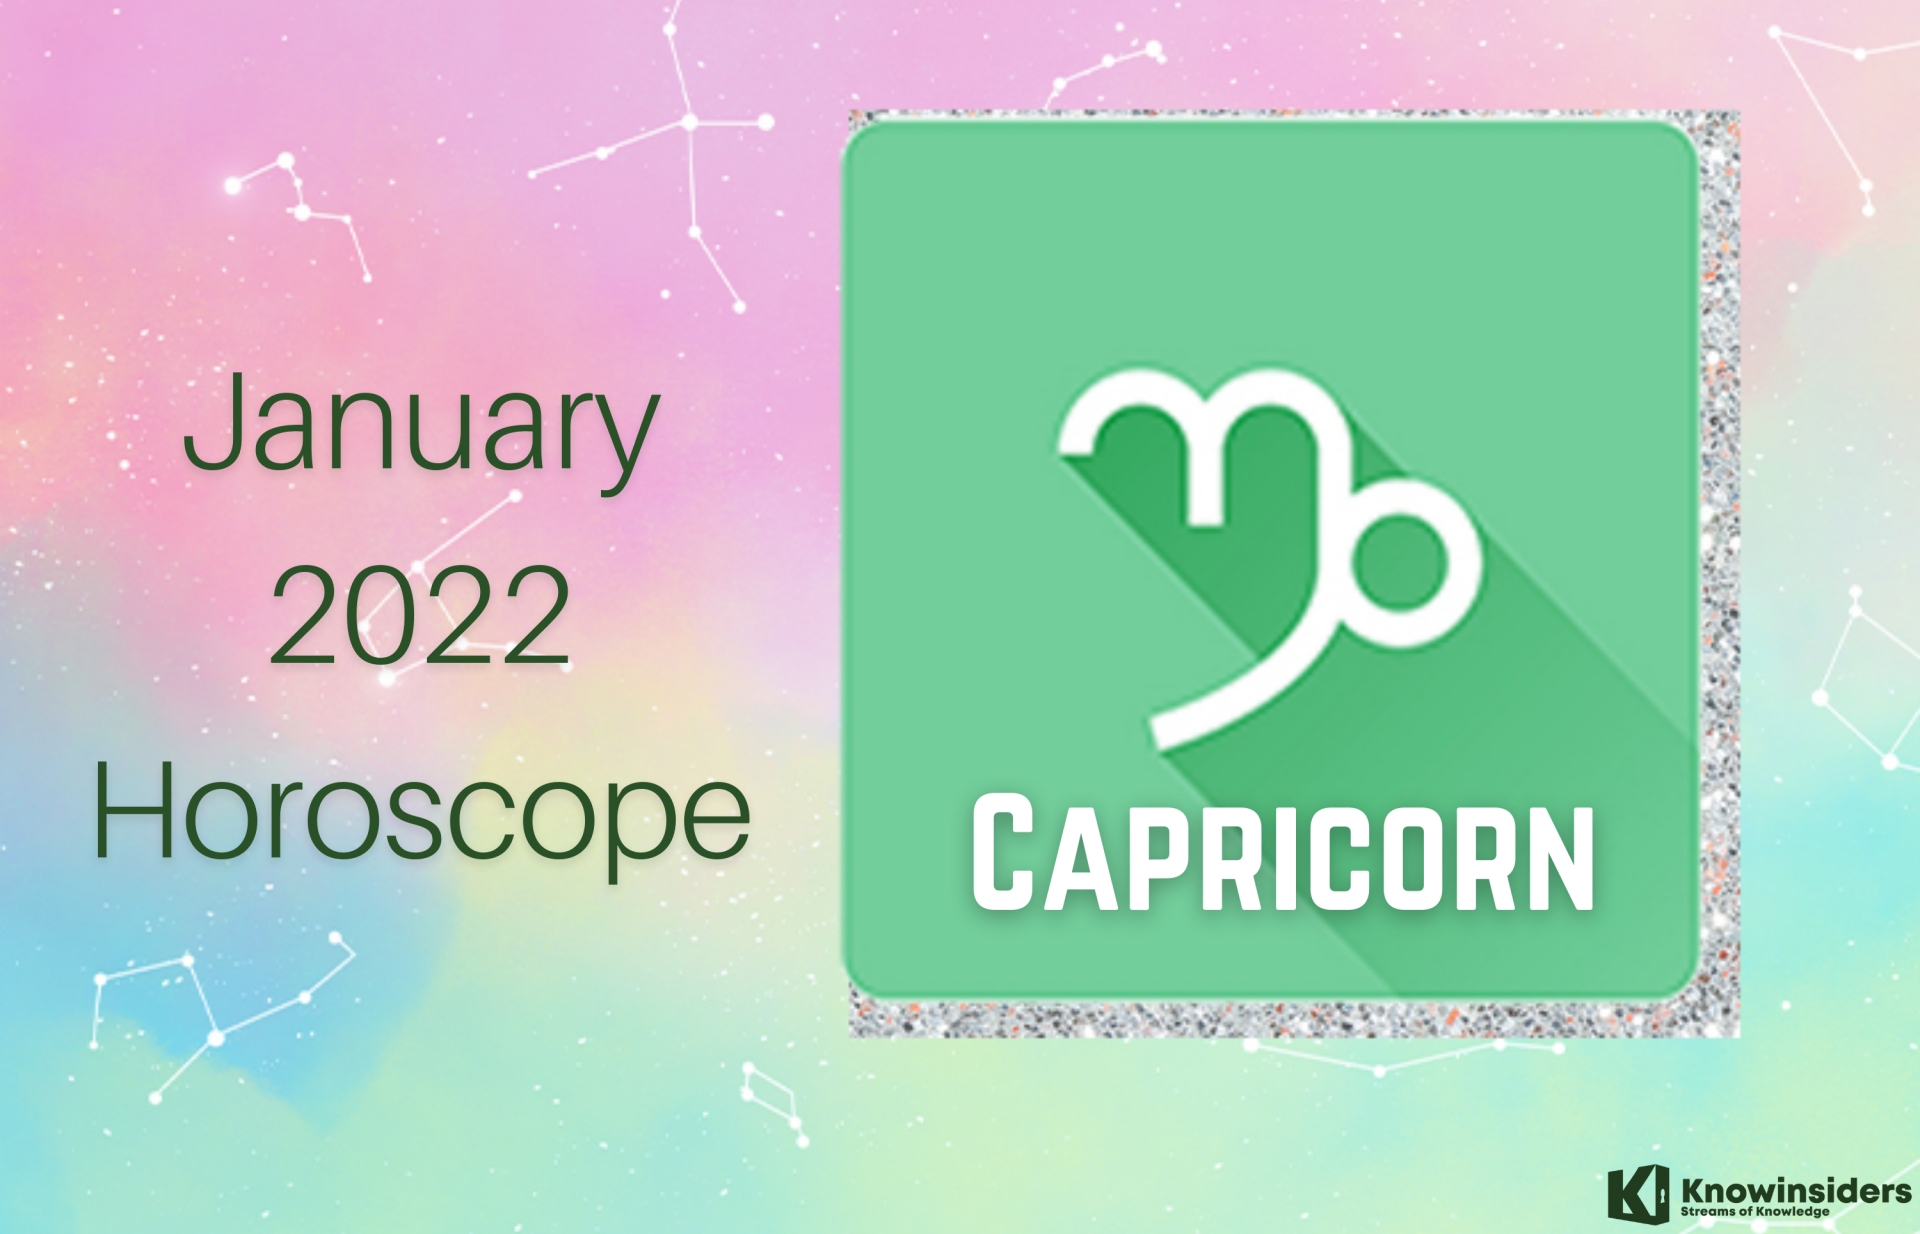 CAPRICORN January 2022 Horoscope: Monthly Prediction for Love, Career, Money and Health